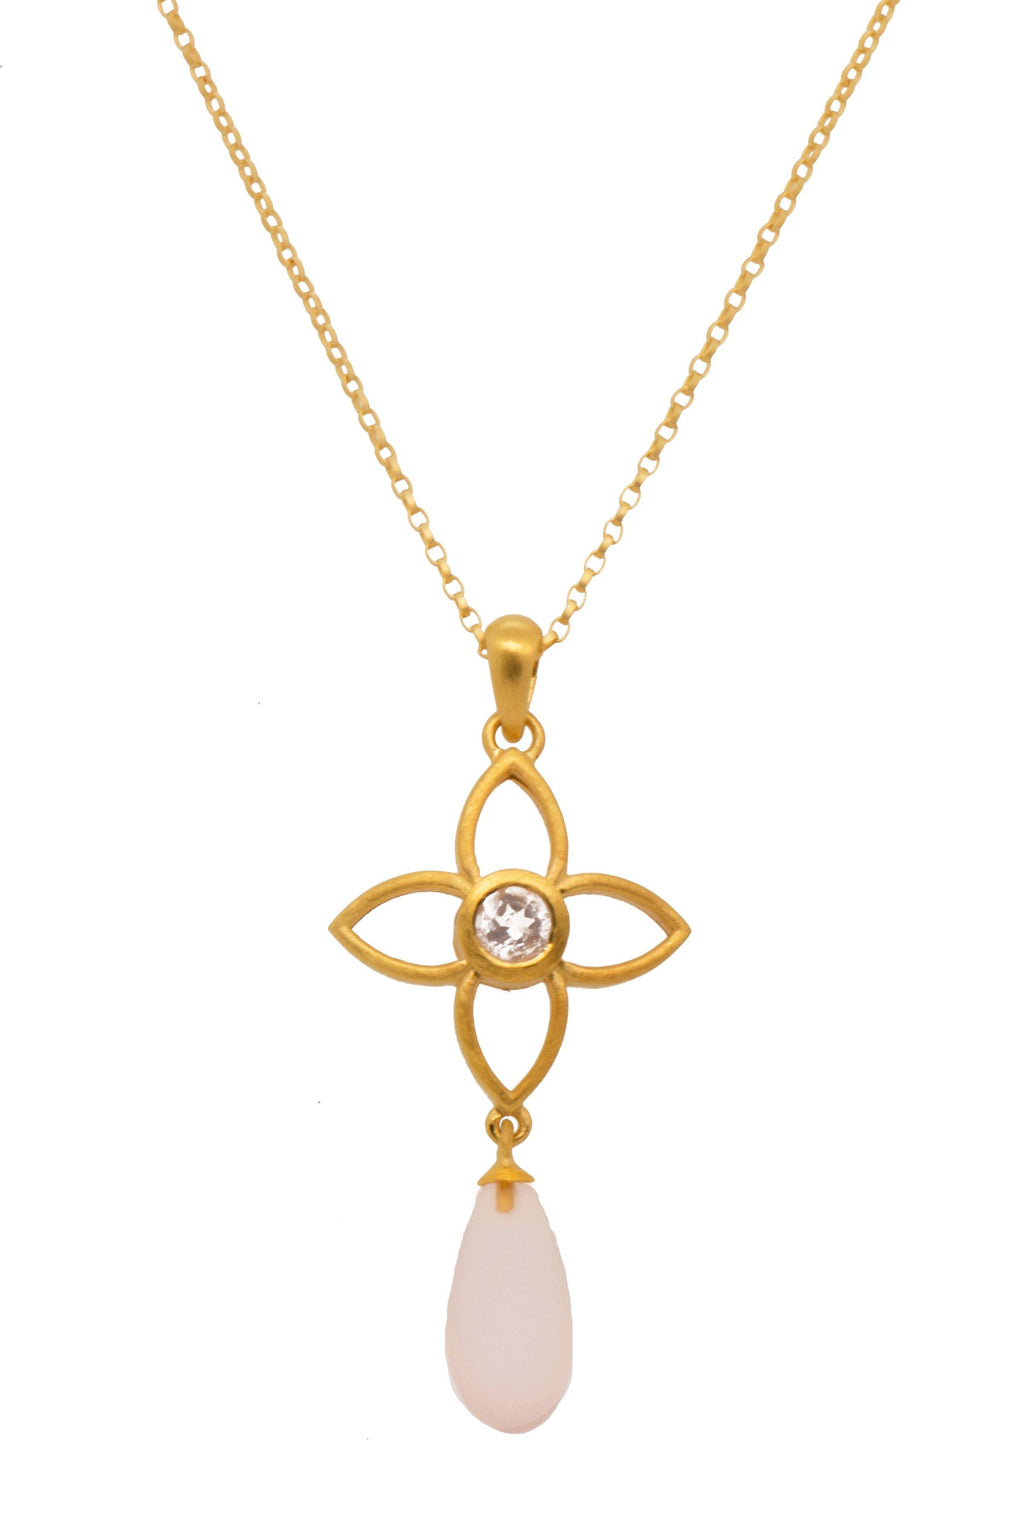 JOYP2DMRQ PENDANT- JOY FLOWER 20MM WITH DROP ROSE QUARTZ MATTE 24K GOLD VERMEIL